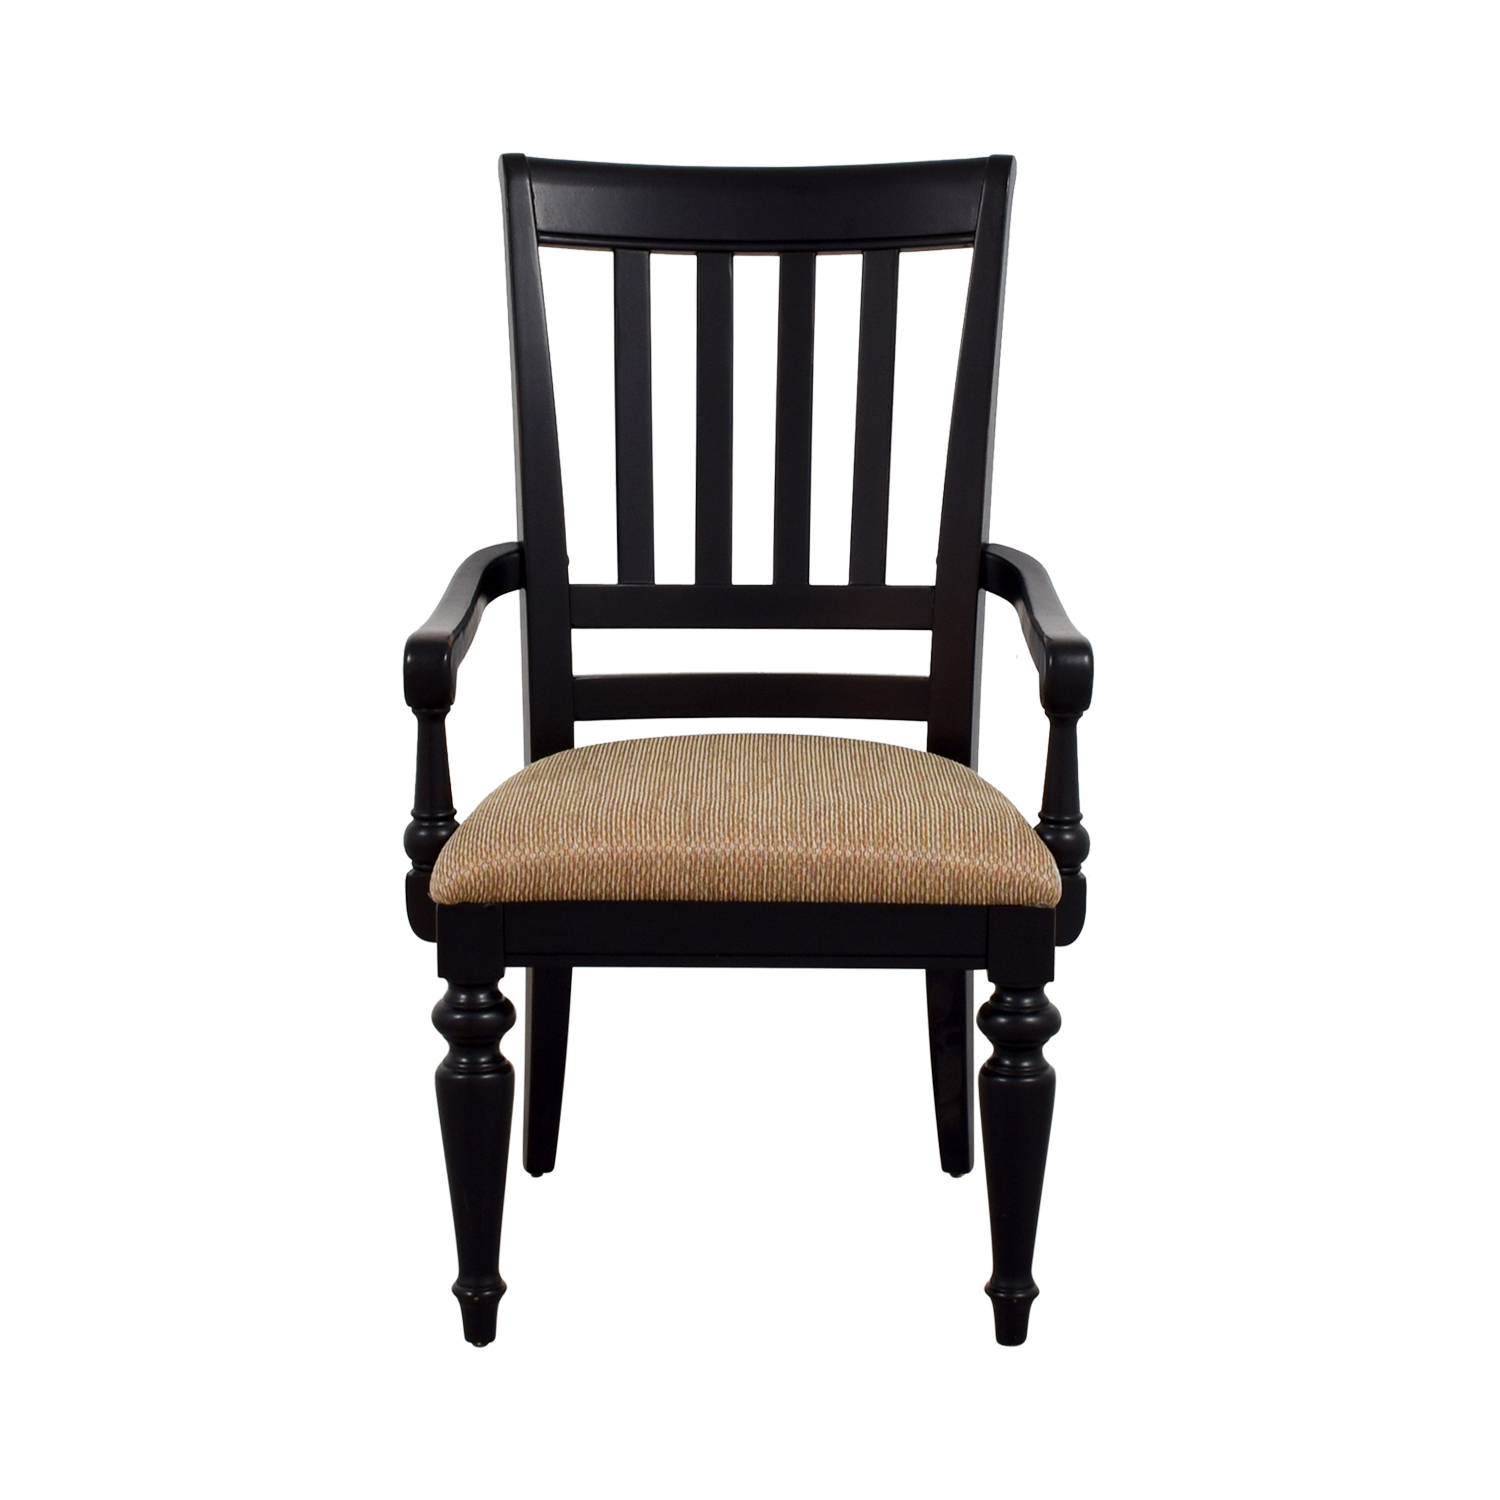 Black Arm Chair with Beige Upholstered Padded Seat